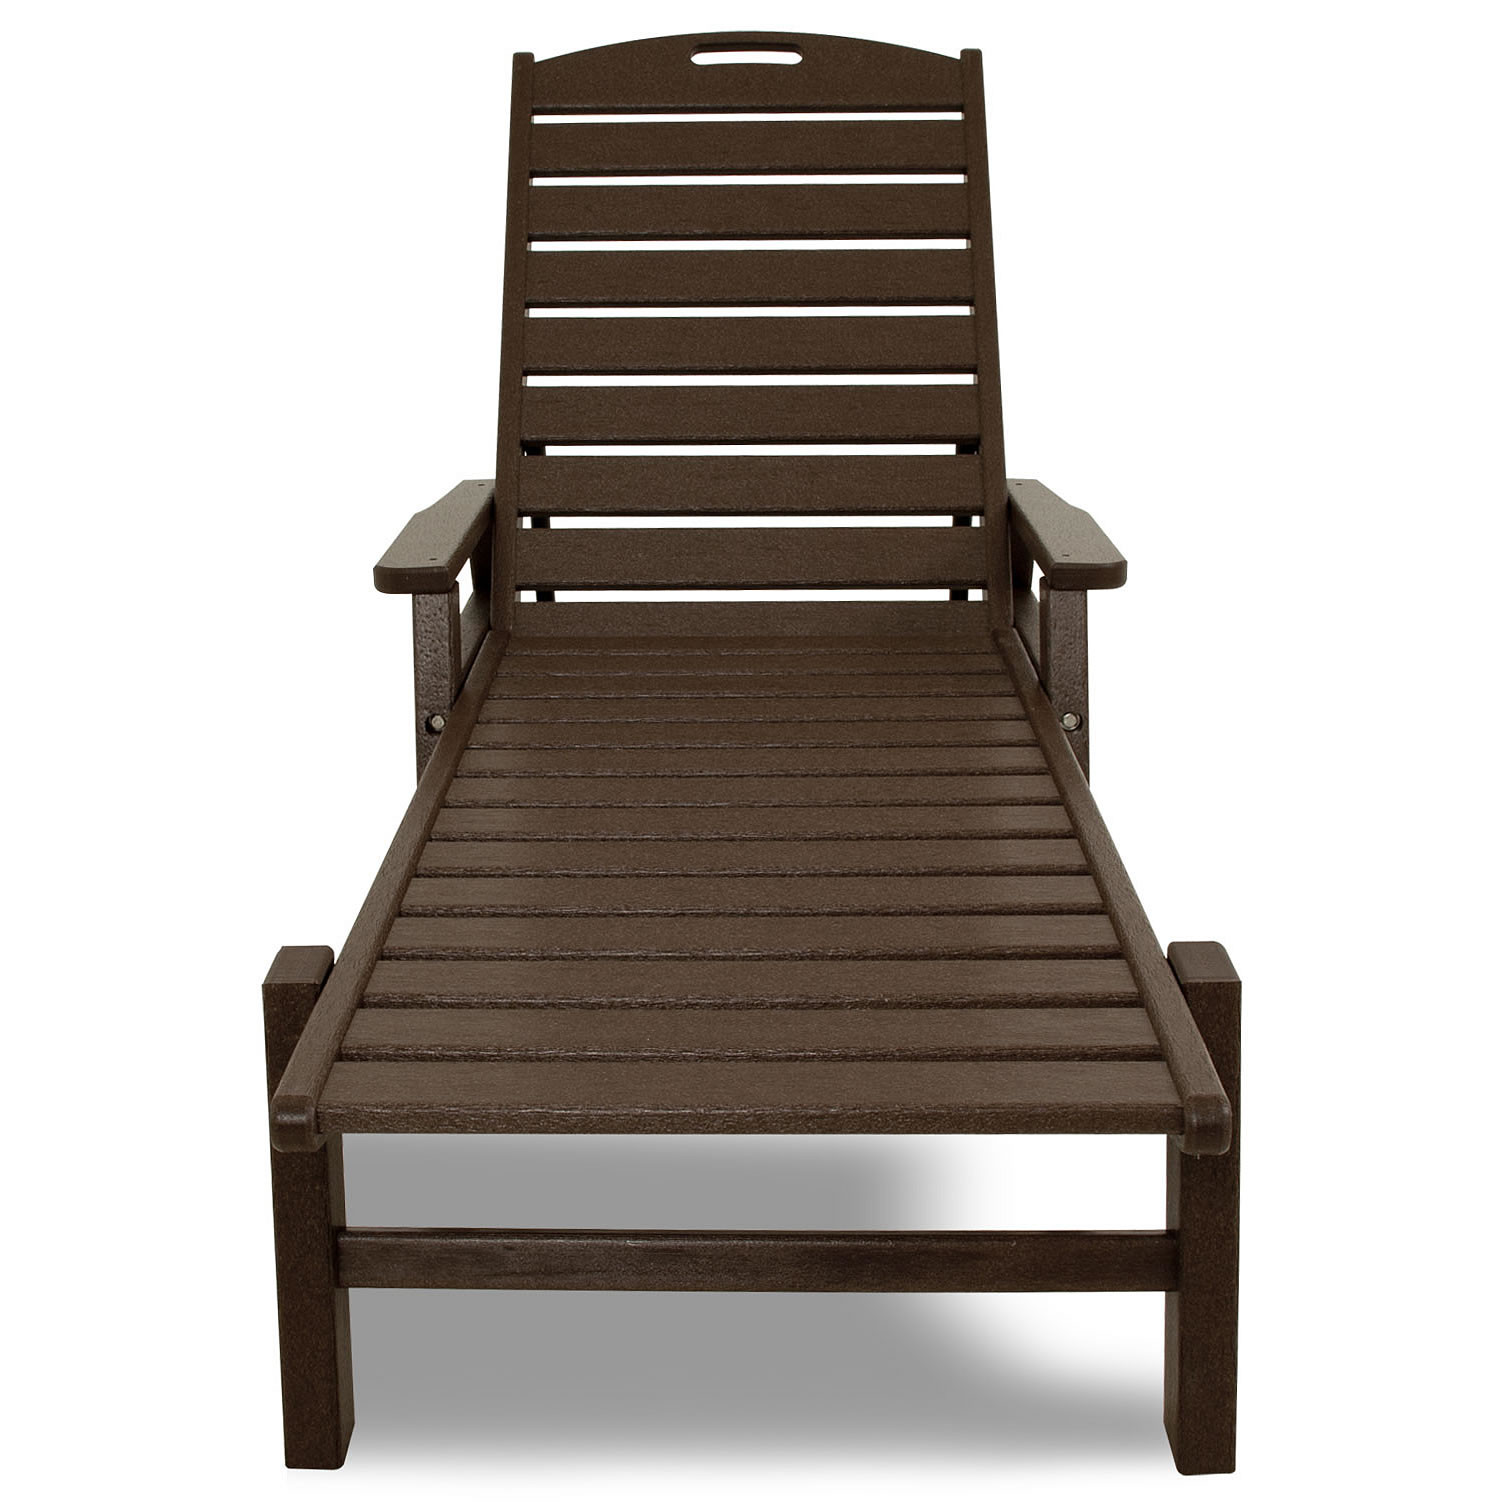 Polywood Outdoor Furniture >> POLYWOOD Nautical Chaise Lounge - Nautical Collection